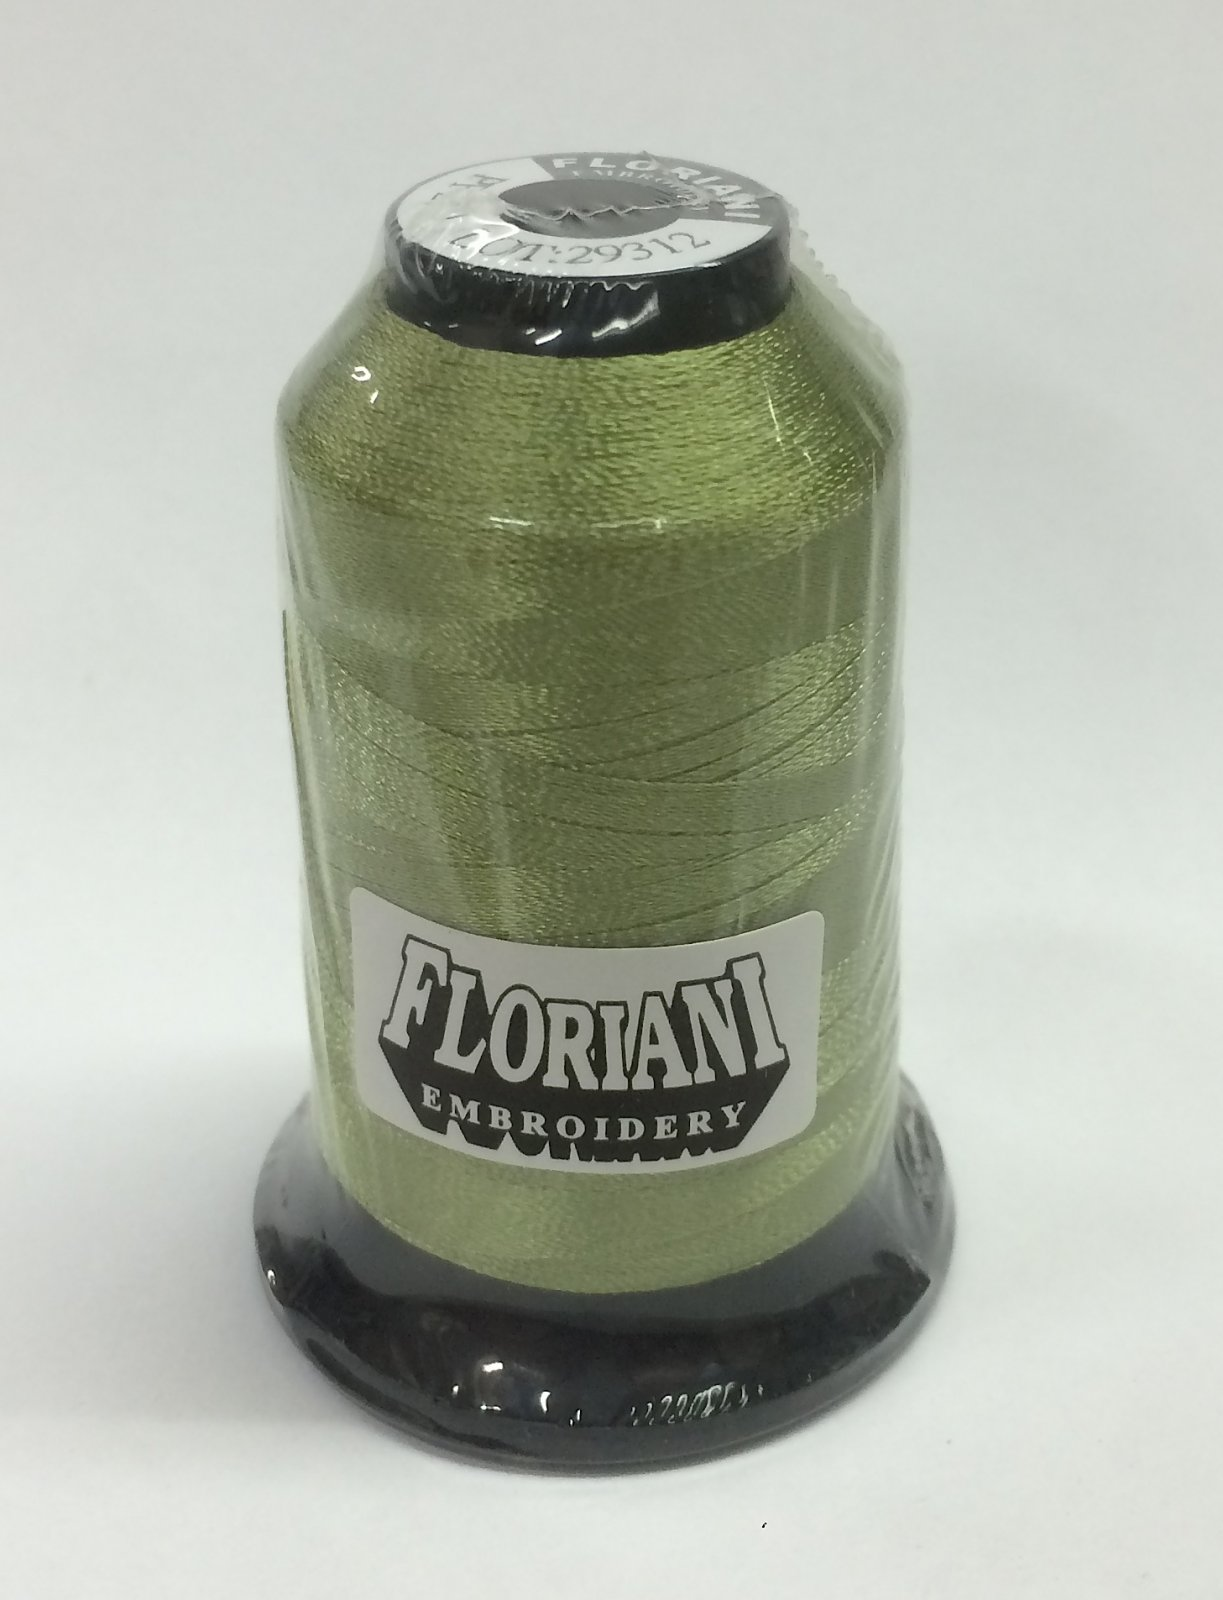 Floriani Embroidery Thread Color #0210